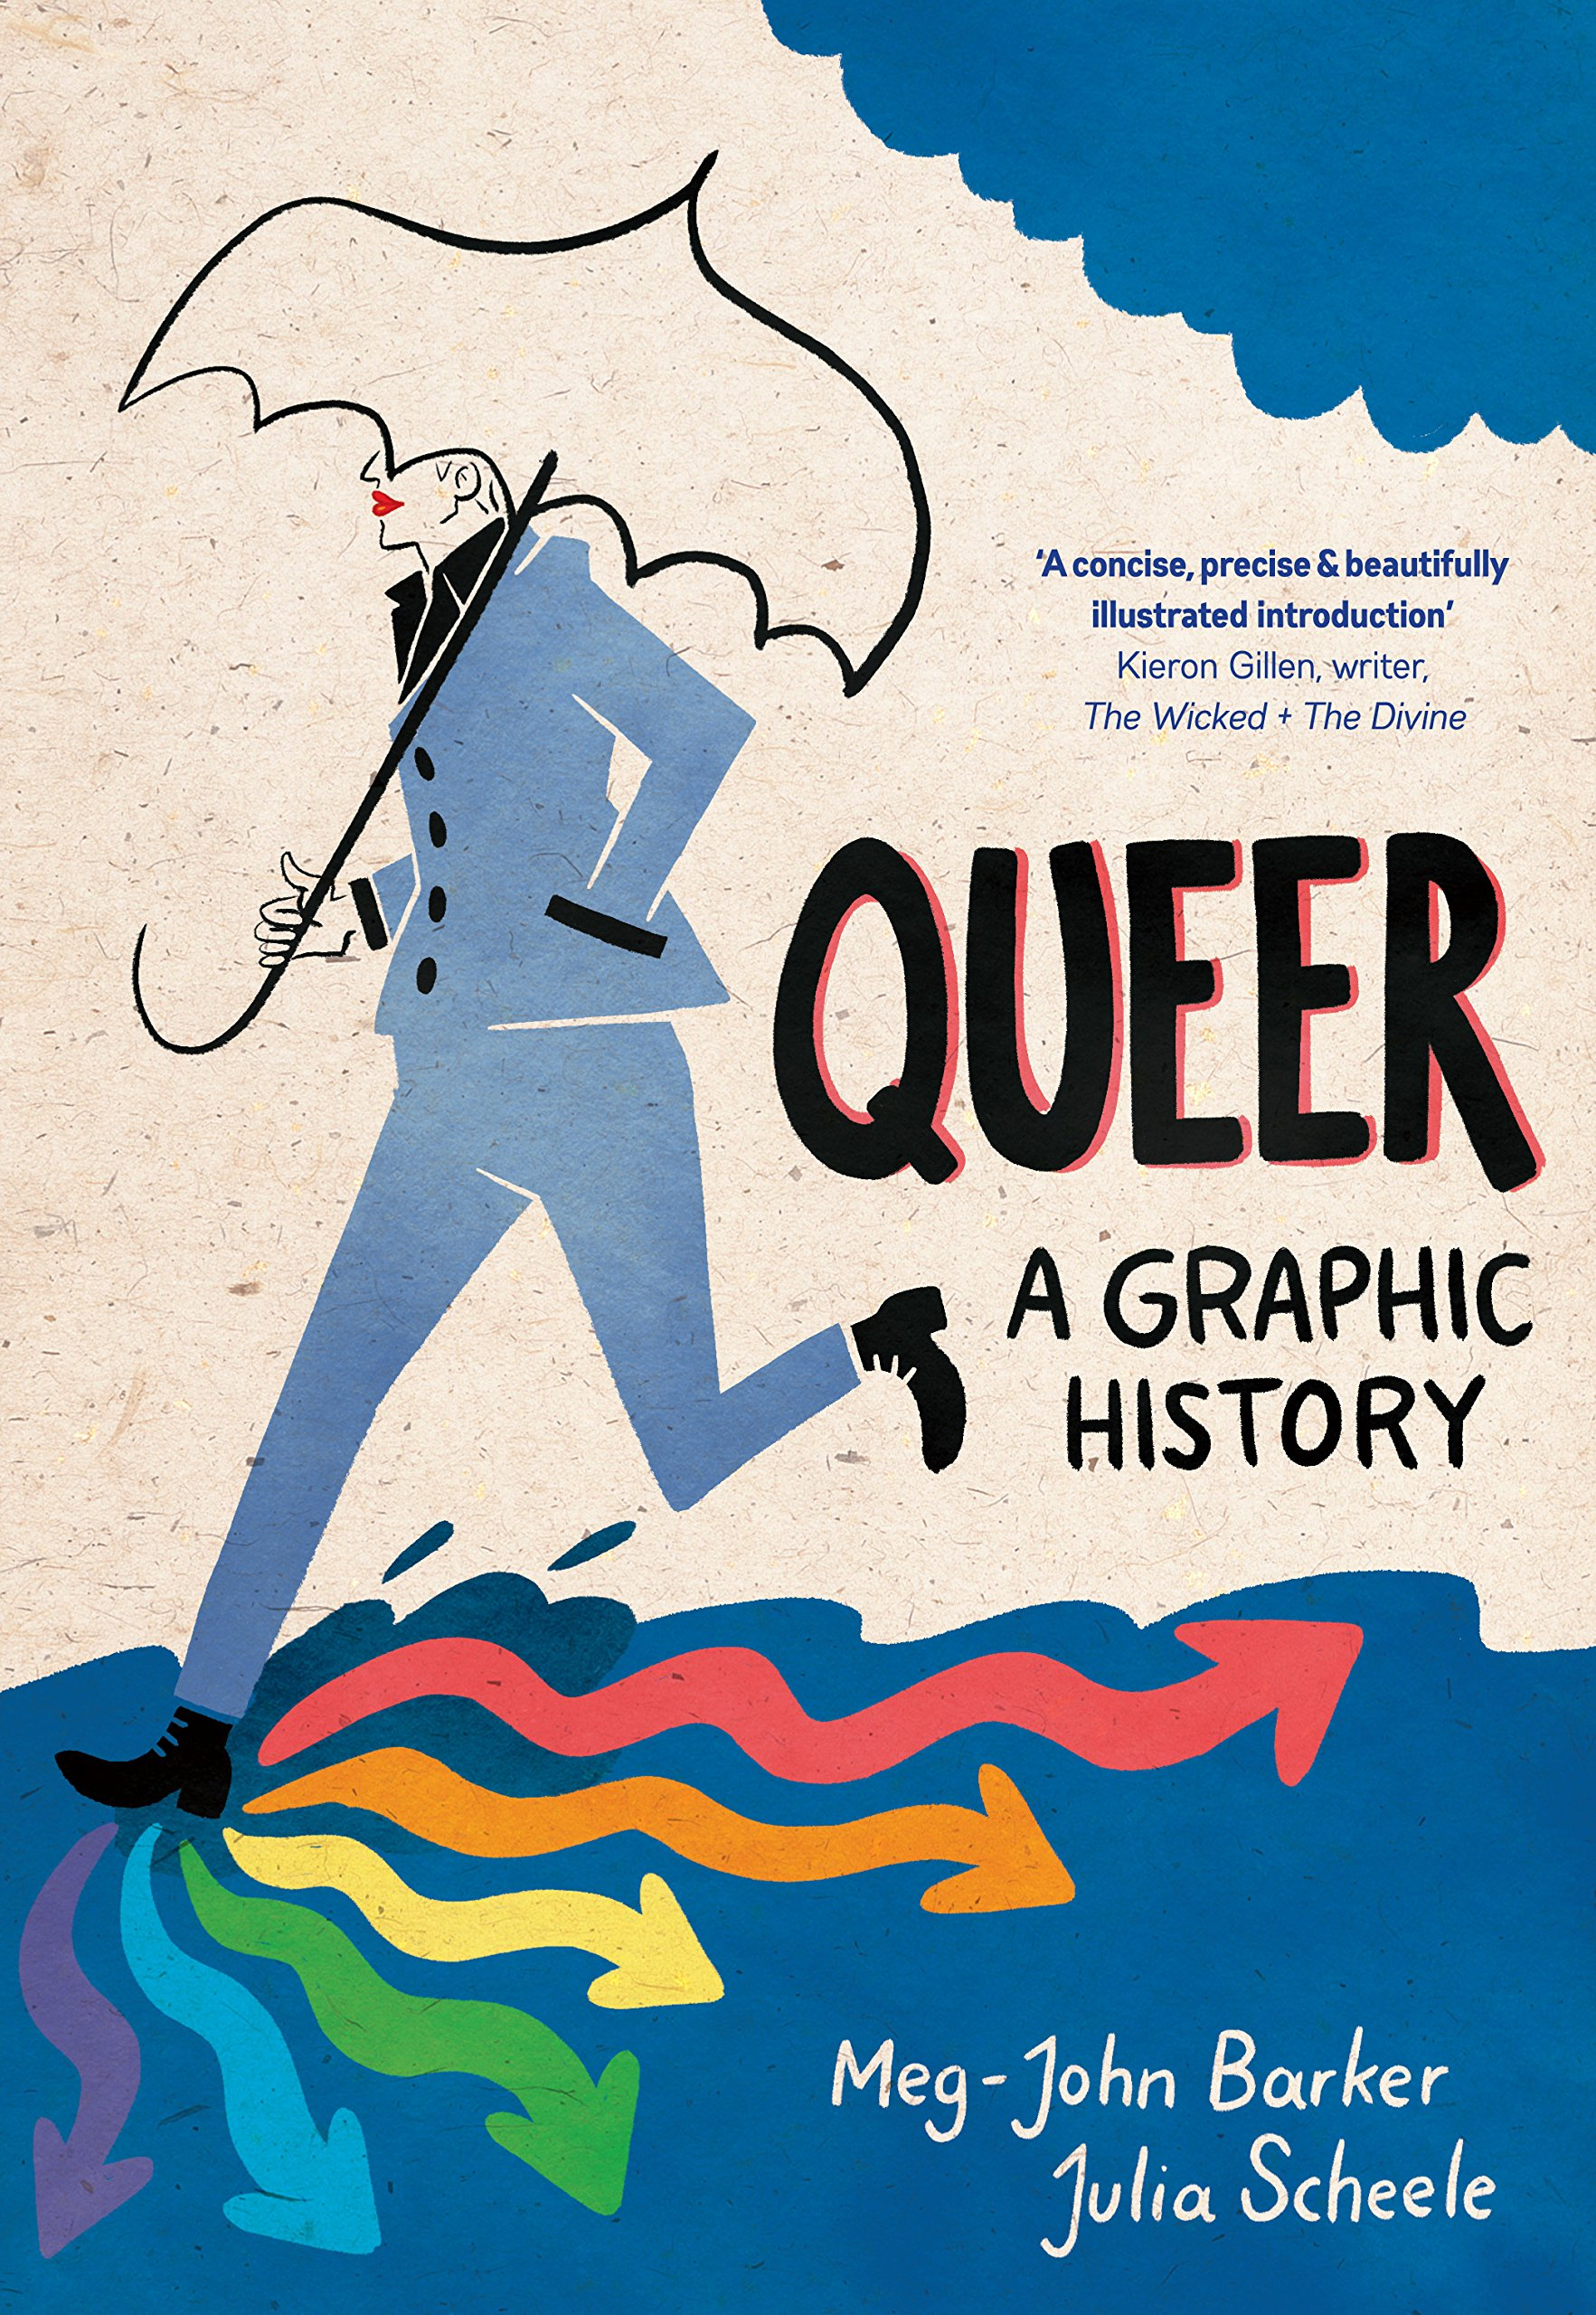 Queer: A Graphic History by Meg-John Barker, Julia Scheele